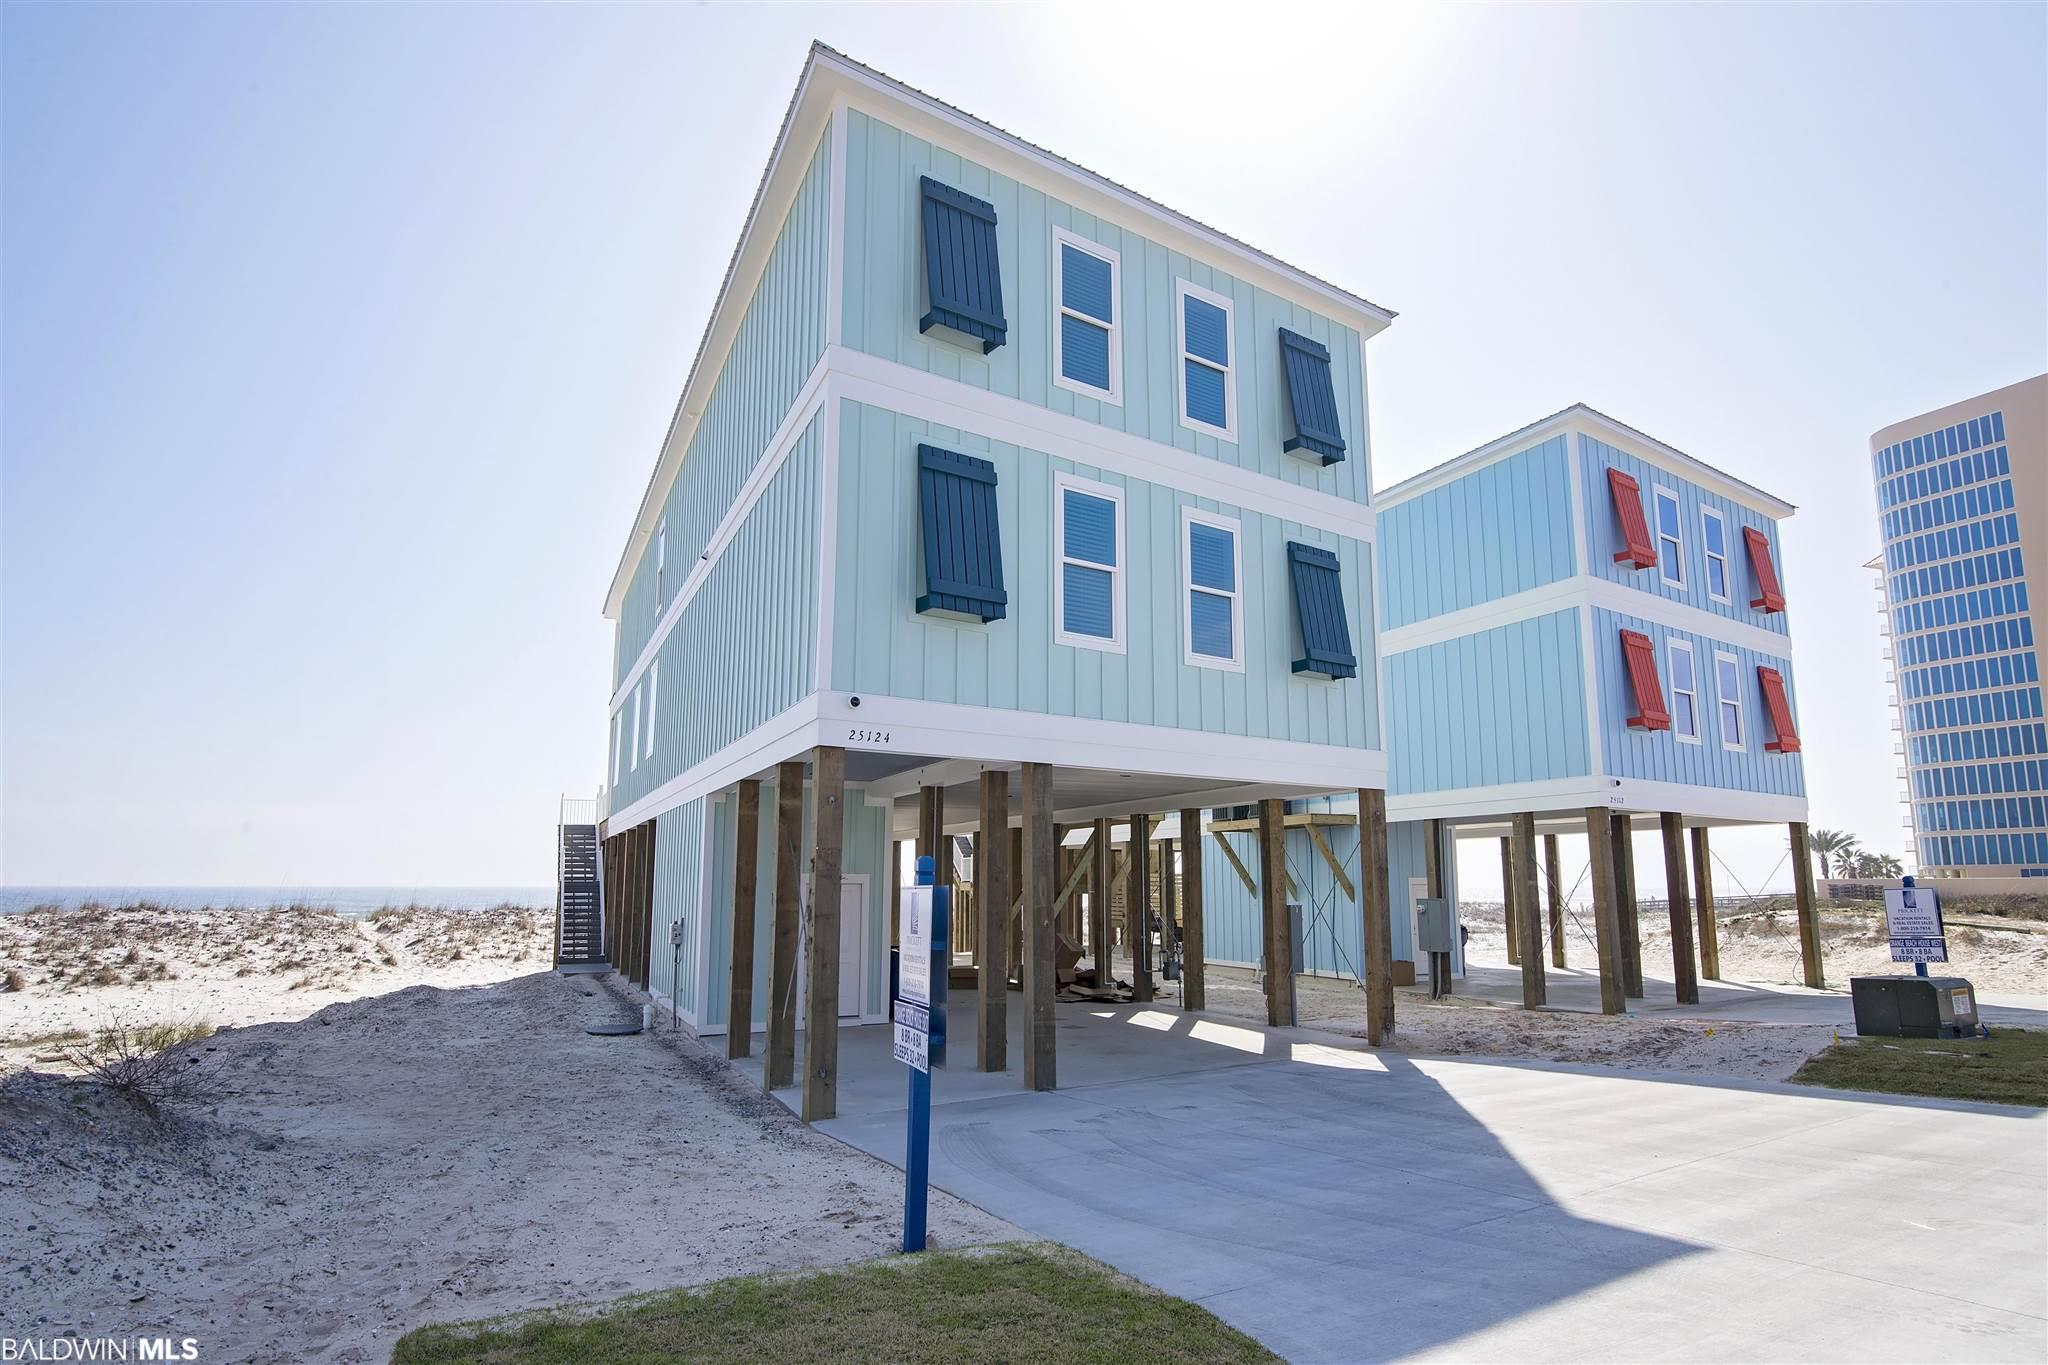 This 8 bedroom, 7.5 bath house sits directly on the white sands of Orange Beach with breath taking views of the Gulf of Mexico. The home is a raised 2 story coastal dream with cool and neutral colors throughout. Features of the home include Shiplap, high ceilings, beautiful granite counter tops, stainless steel, and LVP flooring. The home offers an elevator, security system, and a private pool on the deck that is seasonally heated. This is the perfect rental investment providing sleeping arrangements for up to 28 and enough parking space for 12 vehicles.